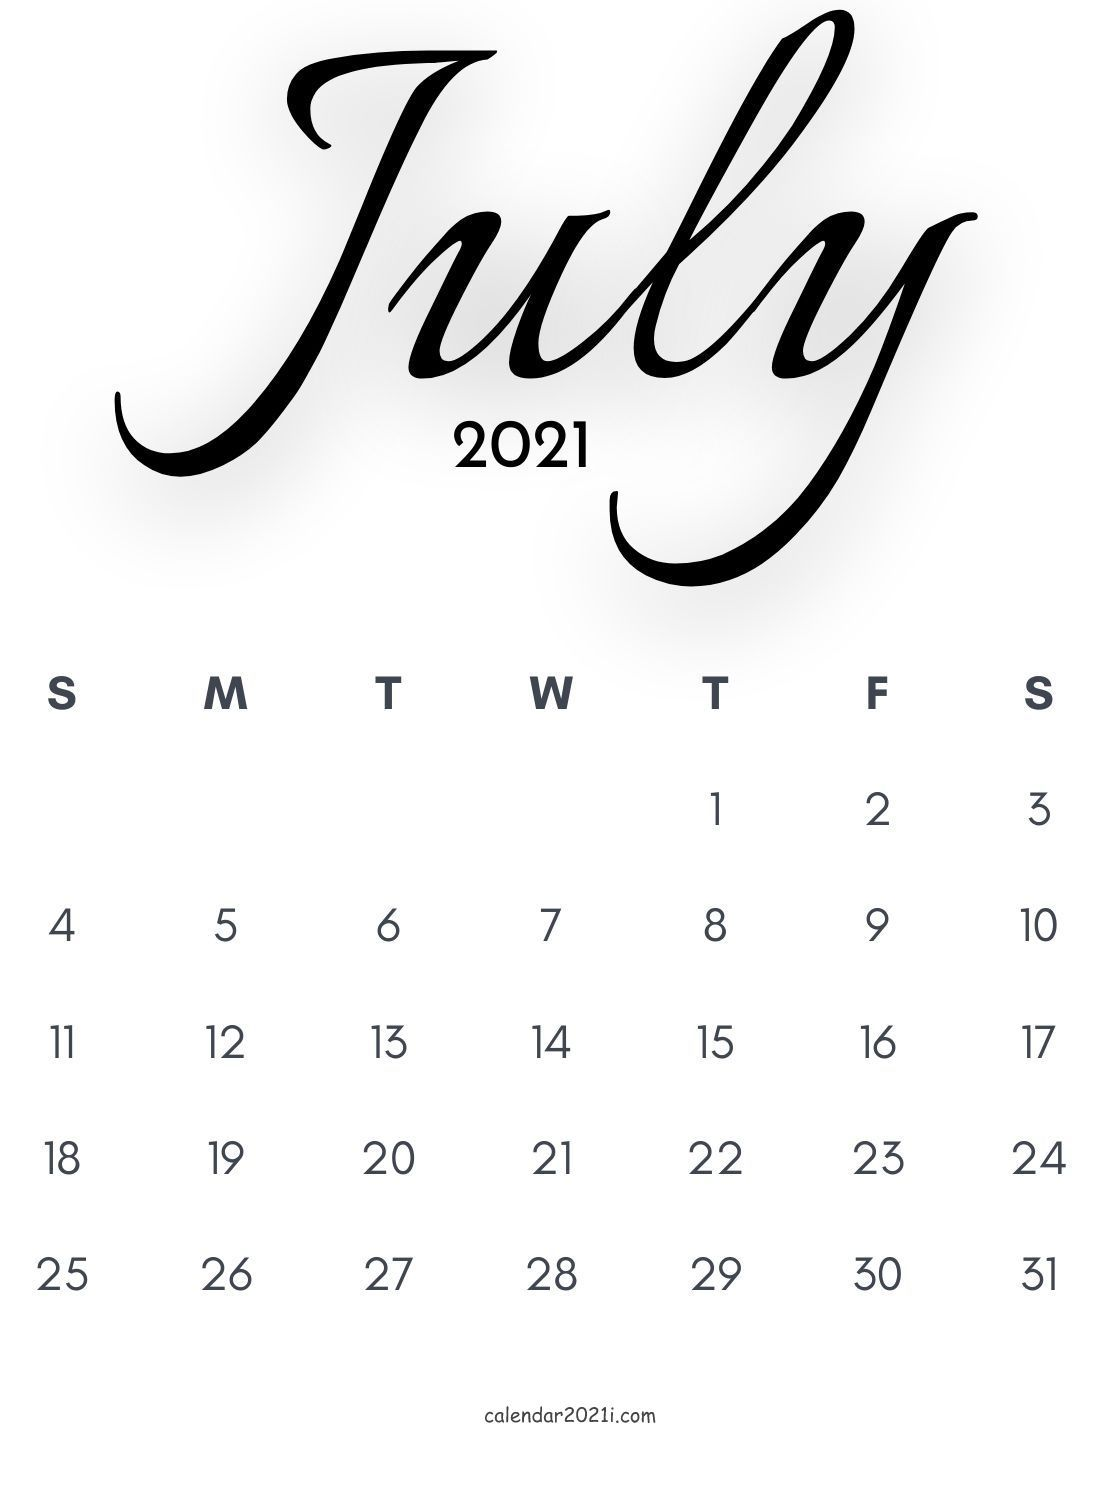 July 2021 Calligraphy Calendar Free Download In 2020 Monthly Calendar Printable Calendar Printables Calligraphy Calendar